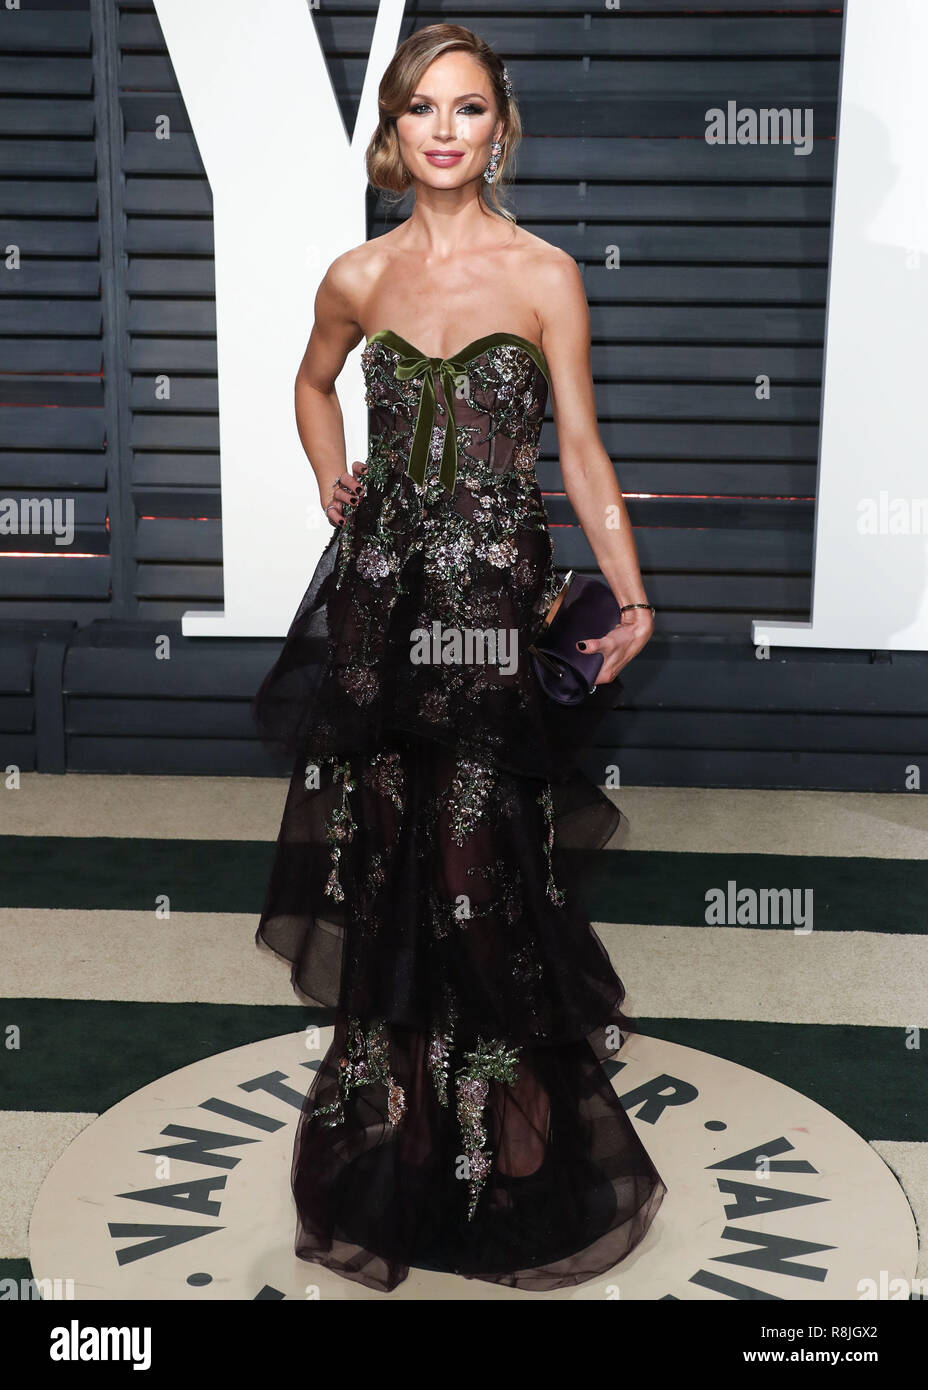 BEVERLY HILLS, LOS ANGELES, CA, USA - FEBRUARY 26: Georgina Chapman arrives at the 2017 Vanity Fair Oscar Party held at the Wallis Annenberg Center for the Performing Arts on February 26, 2017 in Beverly Hills, Los Angeles, California, United States. (Photo by Xavier Collin/Image Press Agency) Stock Photo